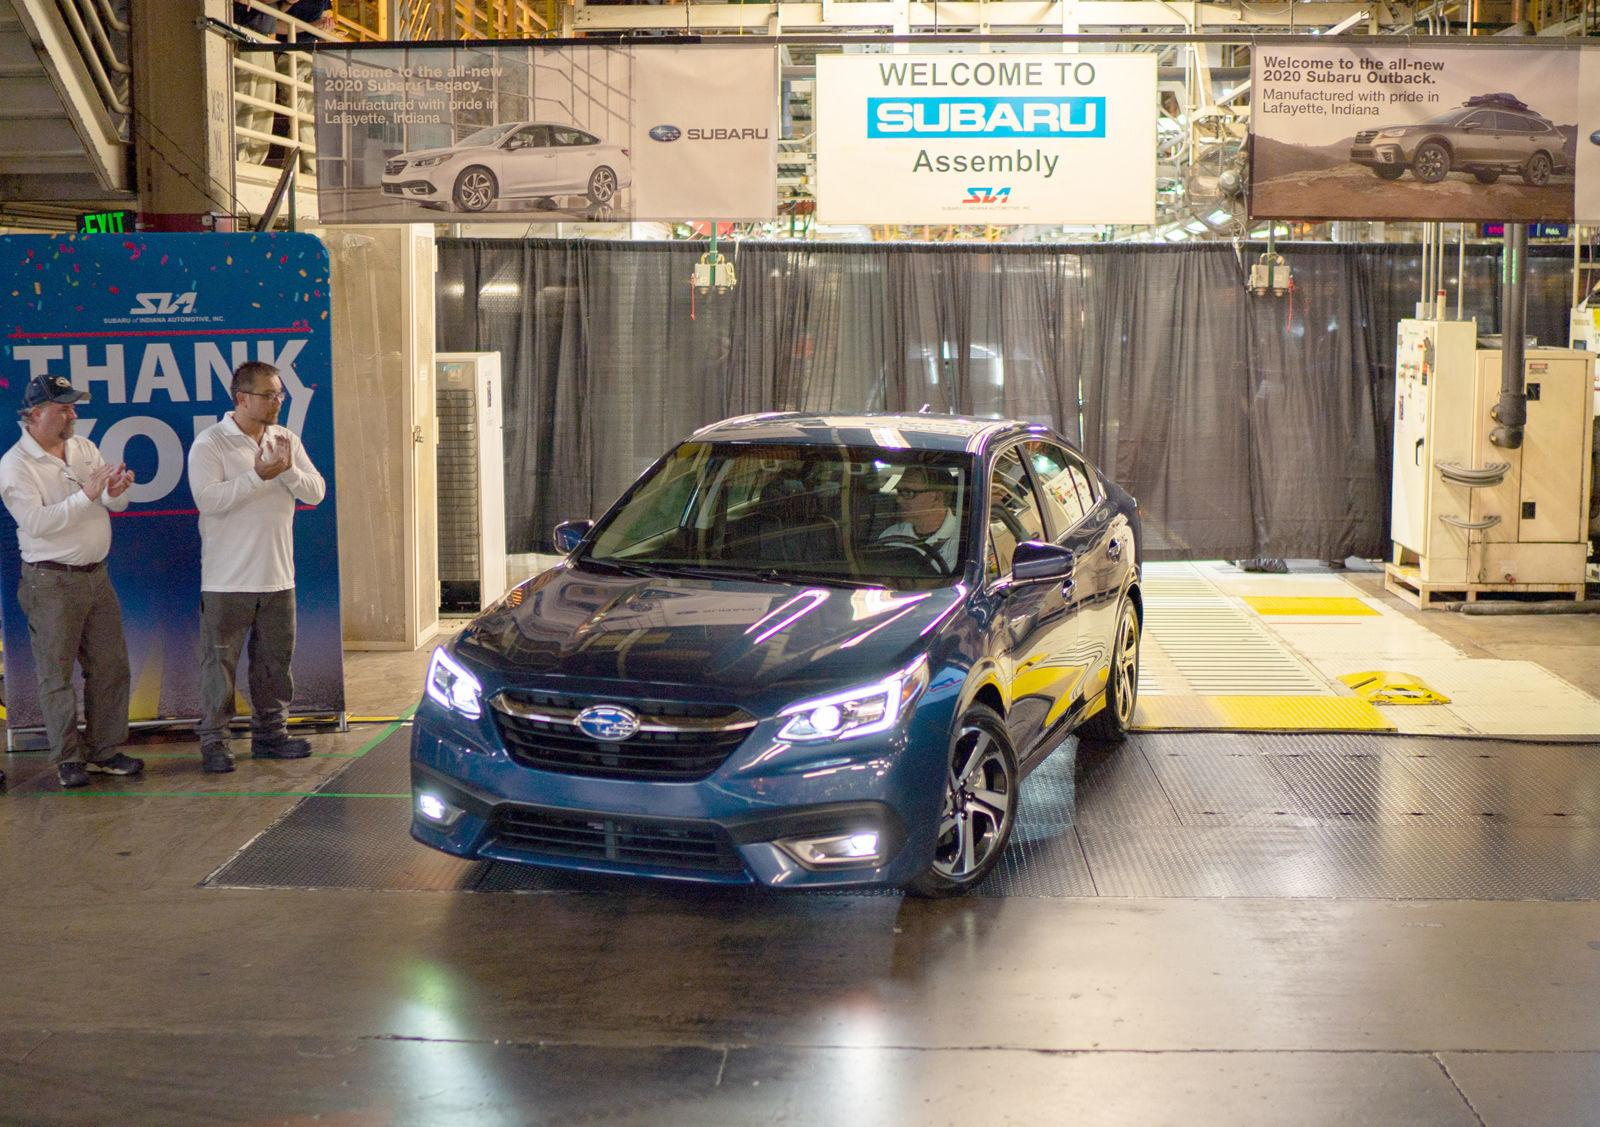 Subaru of Indiana debuts 2020 Legacy, Outback models in Lafayette